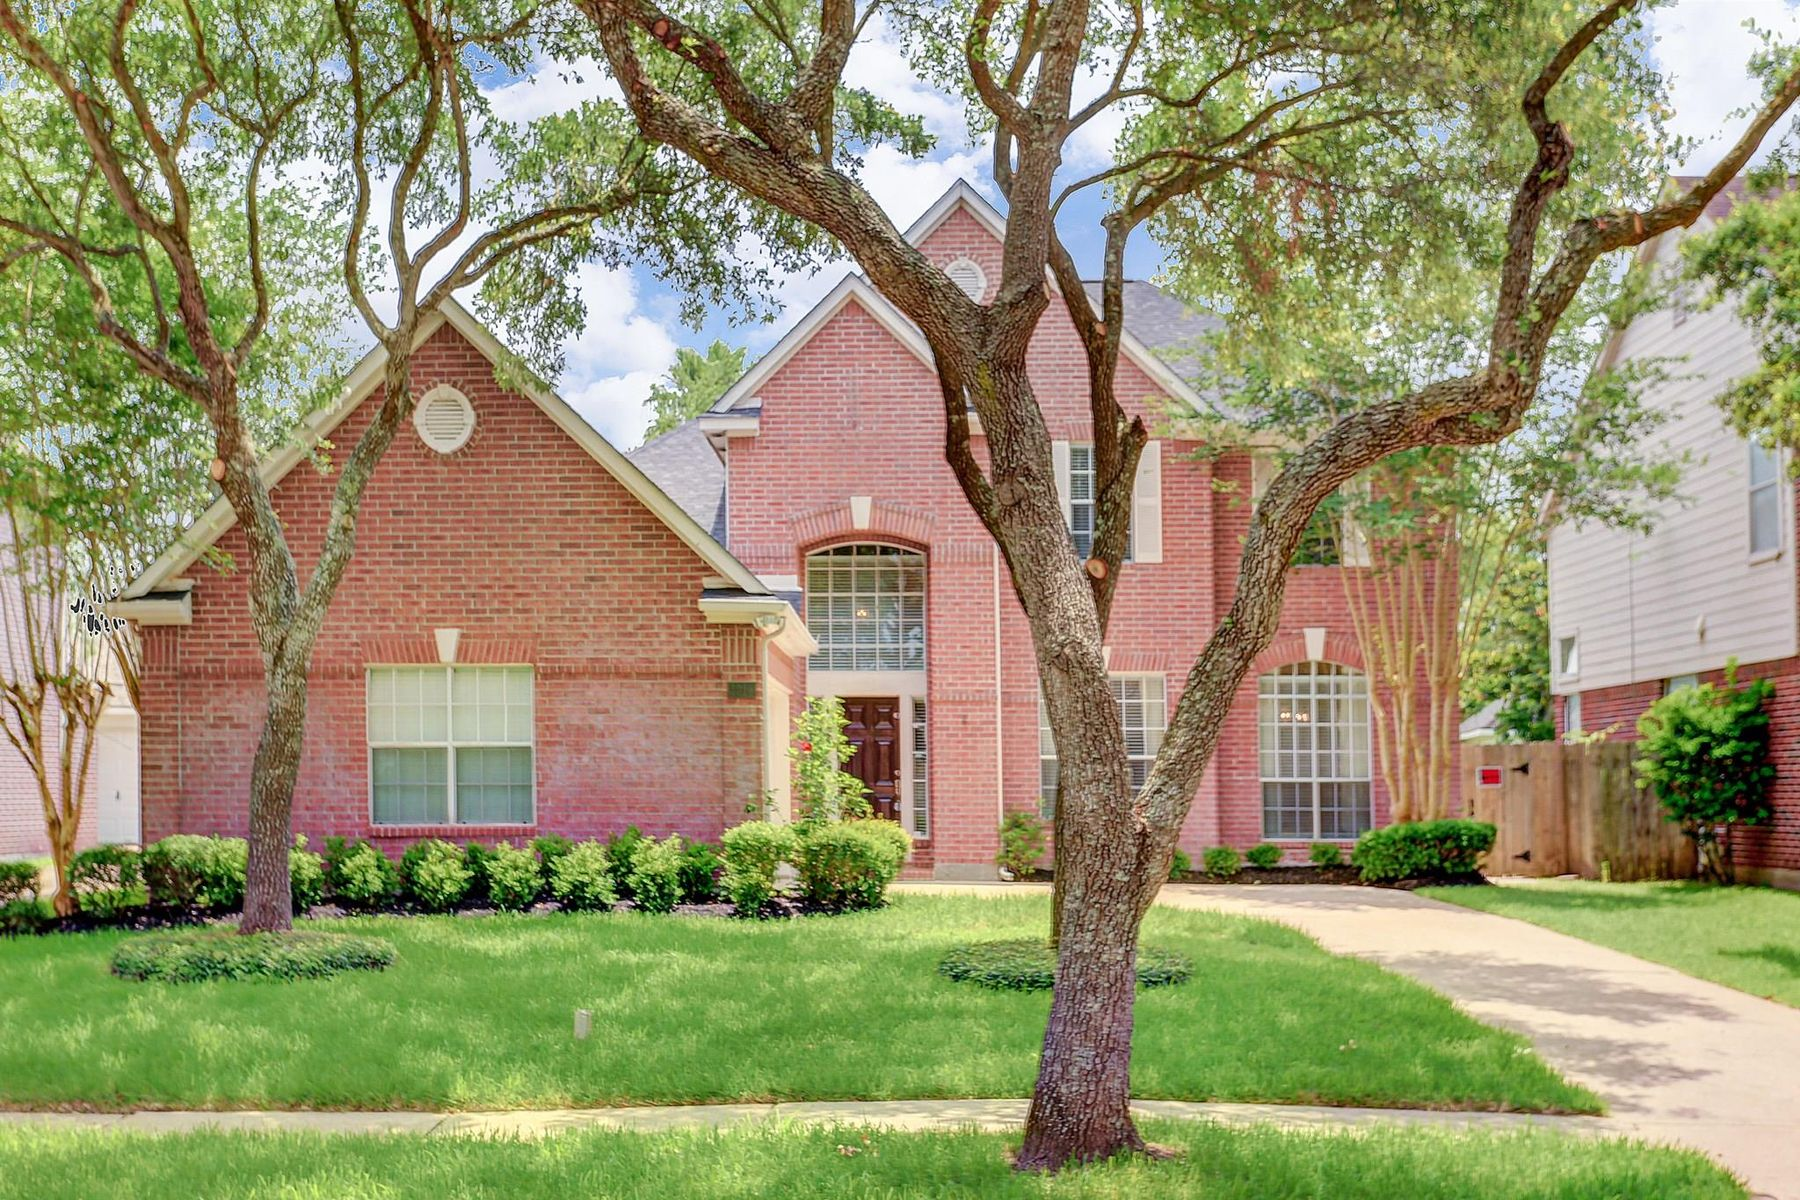 Single Family Homes for Sale at 4915 Winding River Drive Sugar Land, Texas 77478 United States